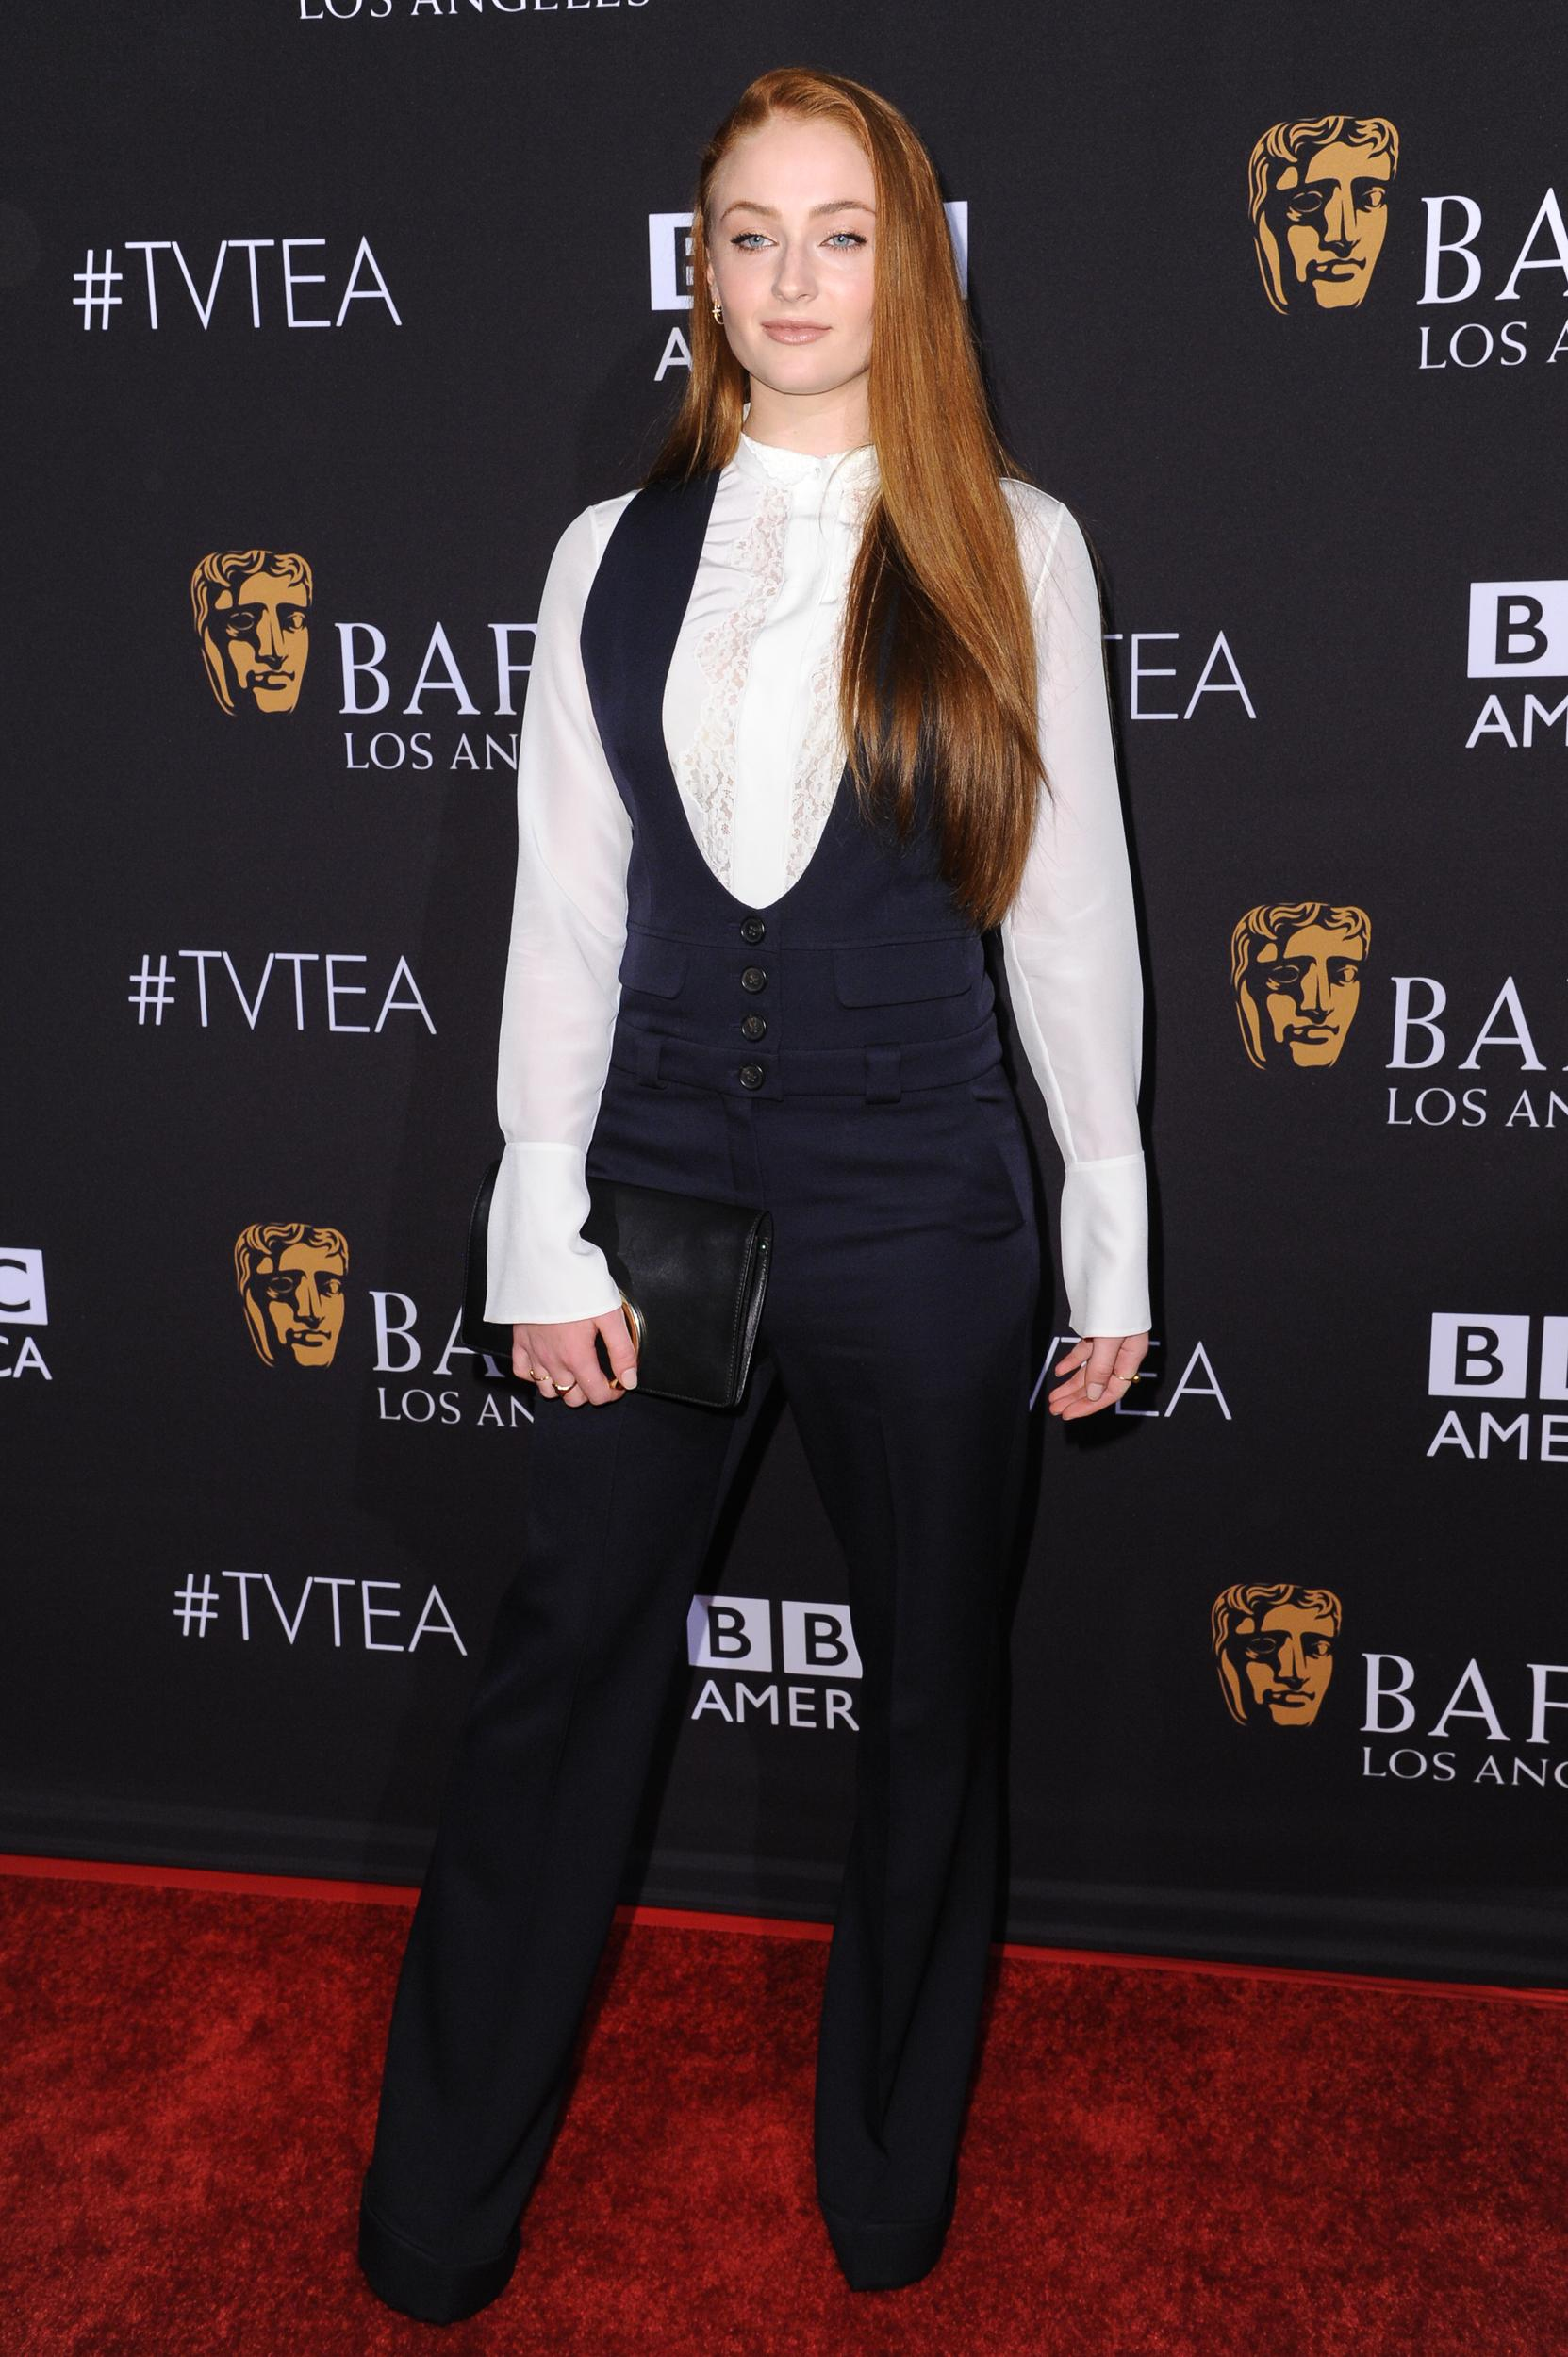 Actress Sophie Turner arrives at the BAFTA Los Angeles TV Tea at SLS Hotel on Saturday, Sept. 19, 2015, in Los Angeles. (Photo by Richard Shotwell/Invision/AP)